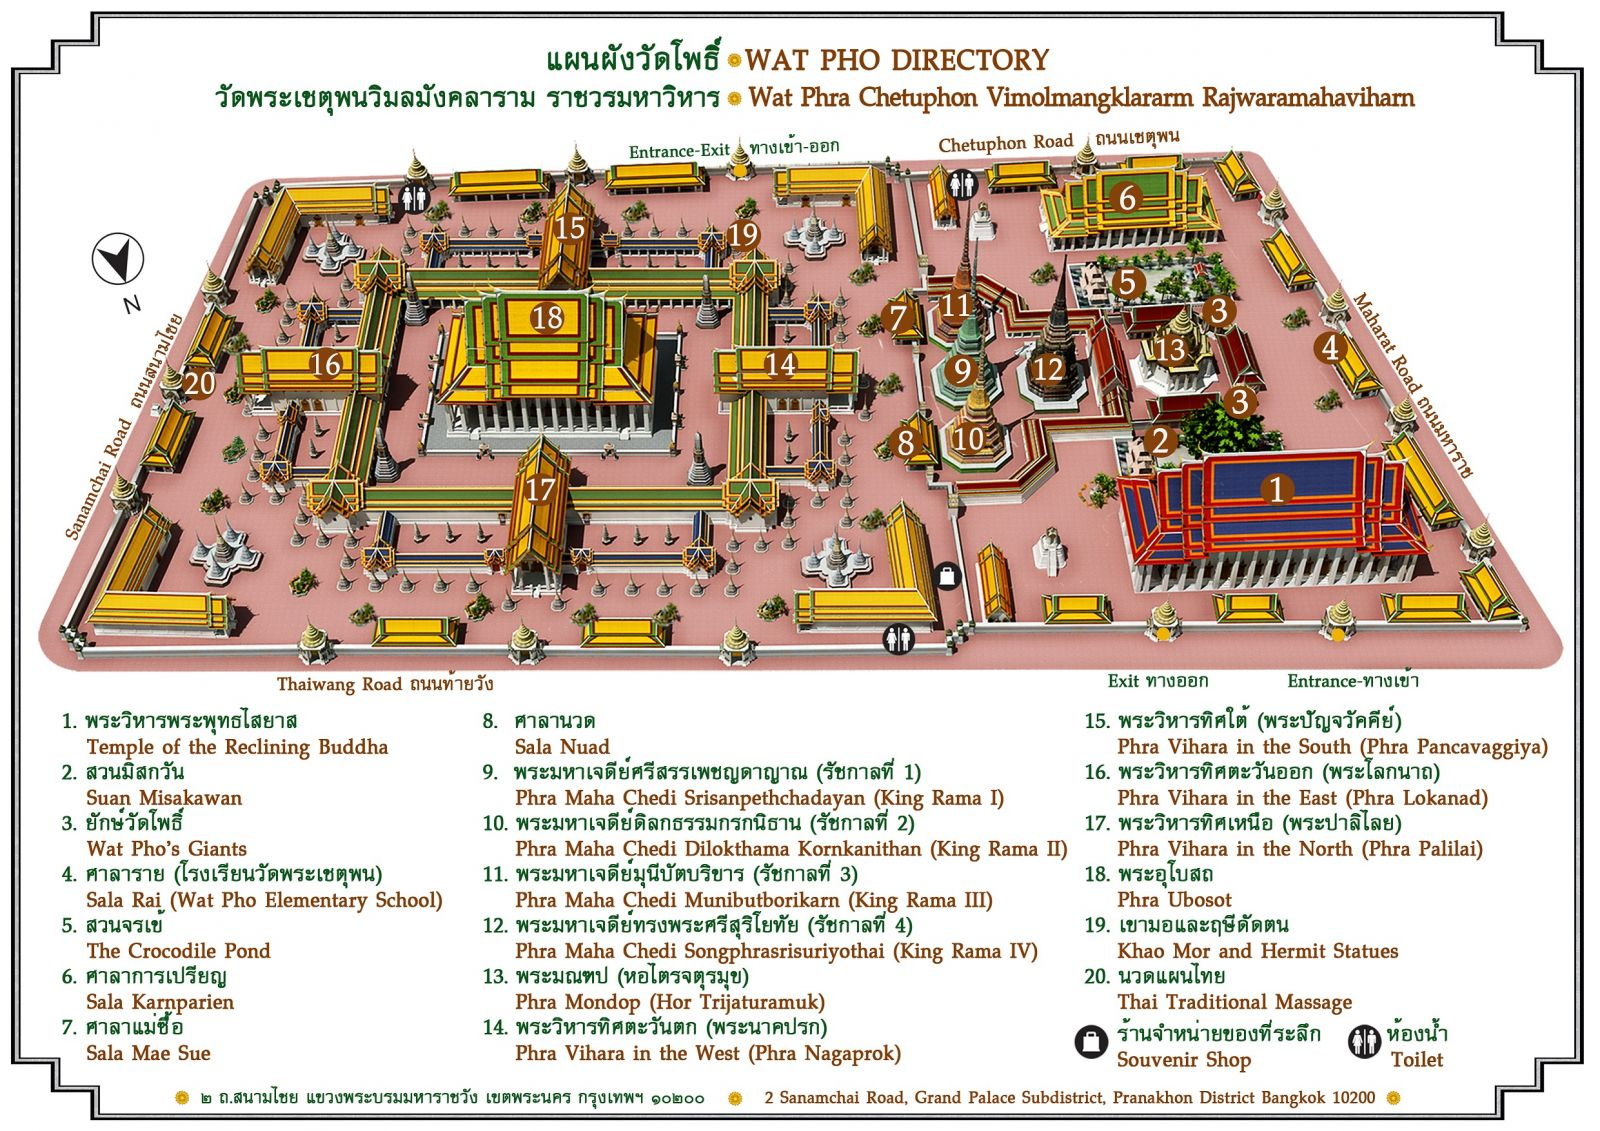 Directory Wat Pho - Wat Pho (The Temple of the Reclining Buddha)